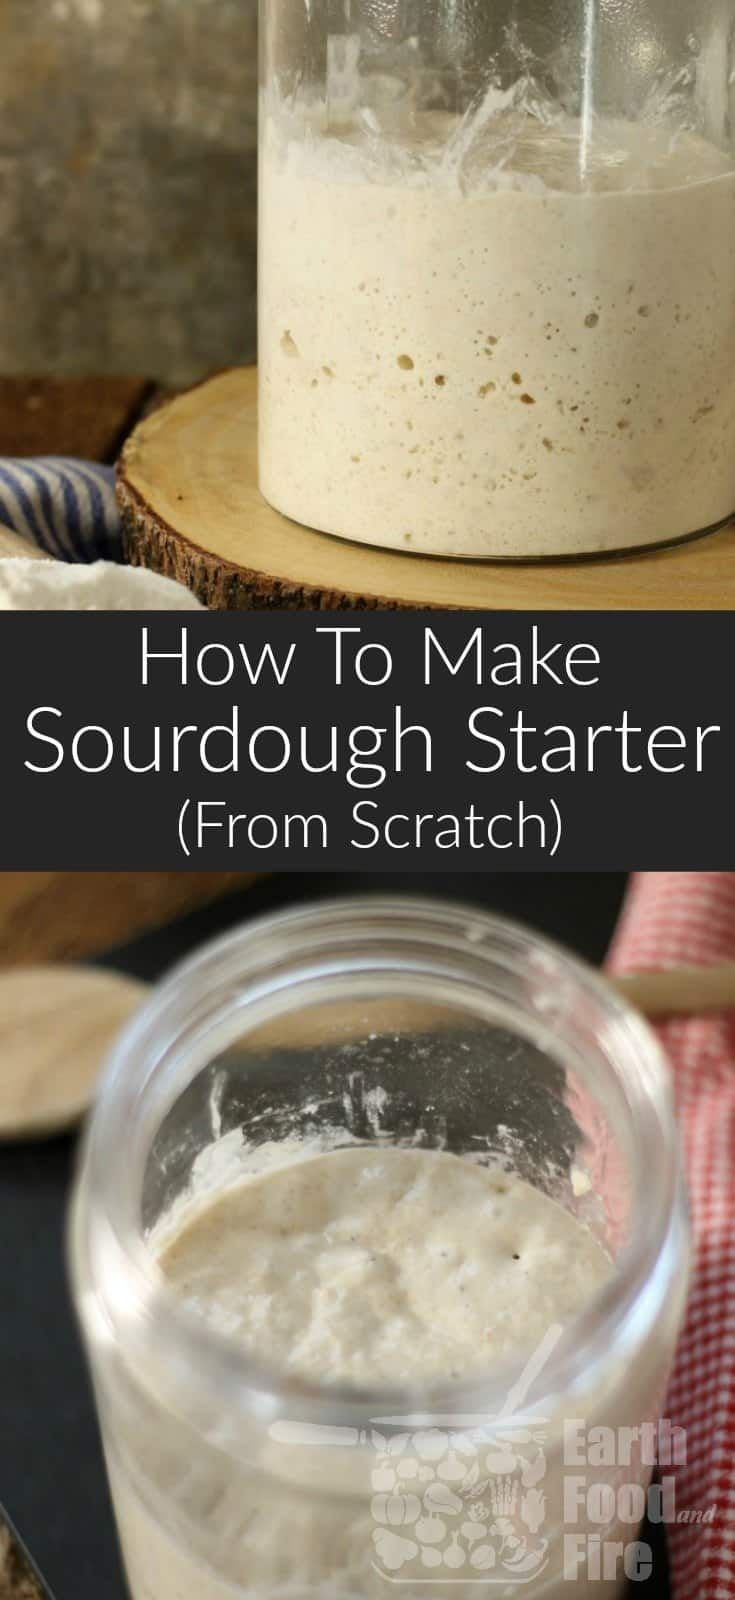 How To Make Sourdough Starter From Scratch